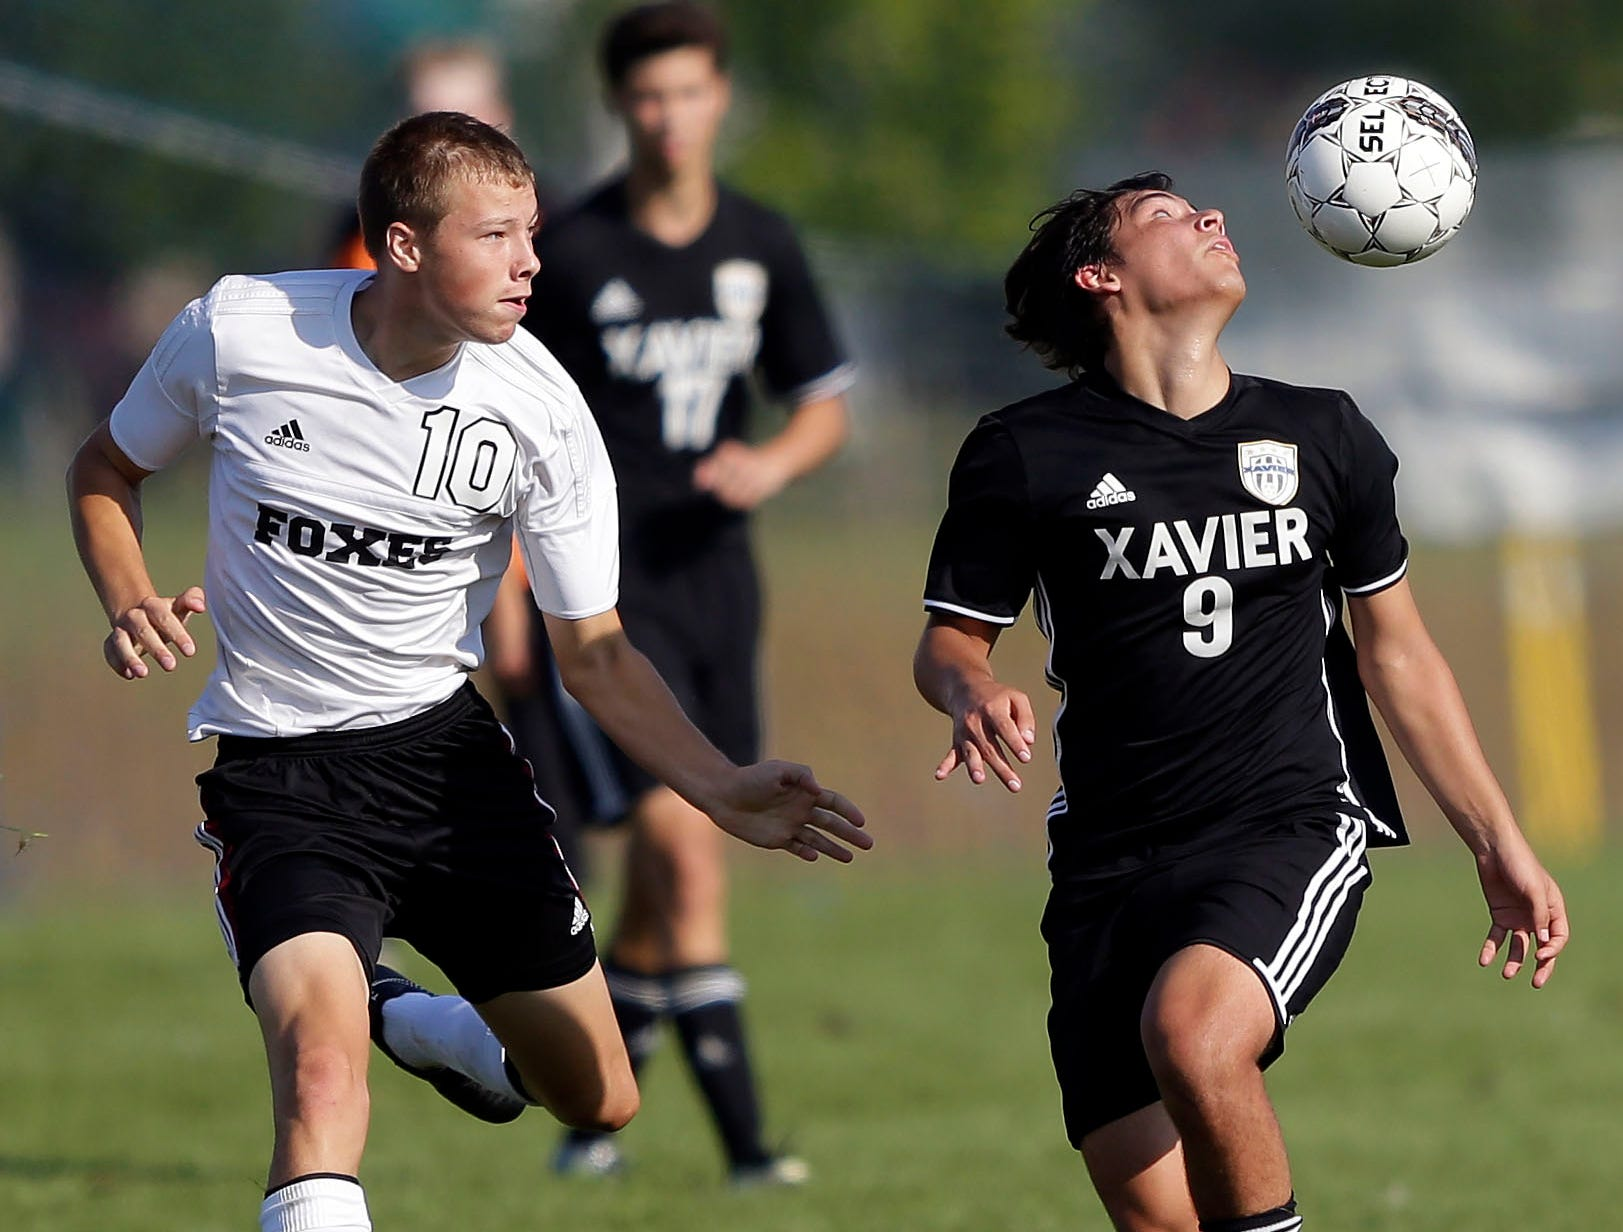 Daniel Plitt, left, of Fox Valley Lutheran and Alex Lopez of Xavier keep an eye on the ball in the Xavier boys soccer tournament Saturday, September 15, 2018, at the Scheels USA Sports Complex in Appleton, Wis.